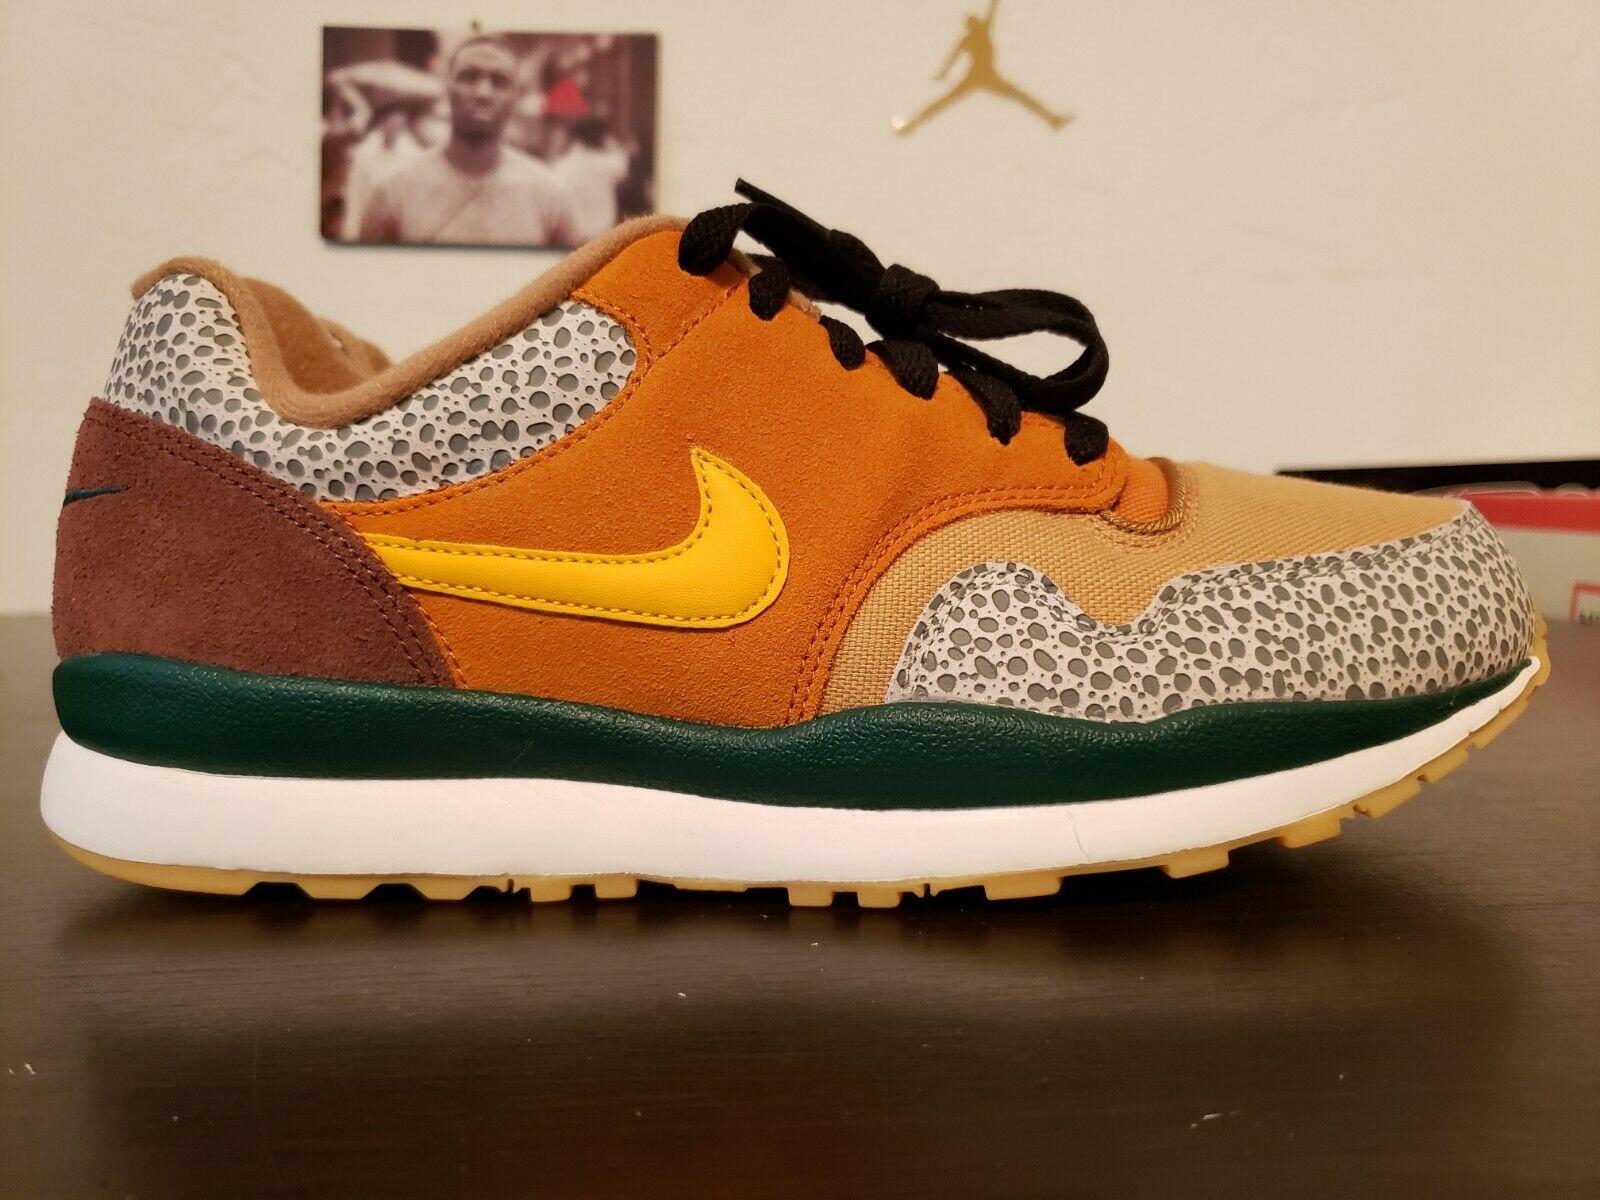 Nike Air Safari SE Mens shoes sz 9 Monarch Yellow Maroon AO3298-800